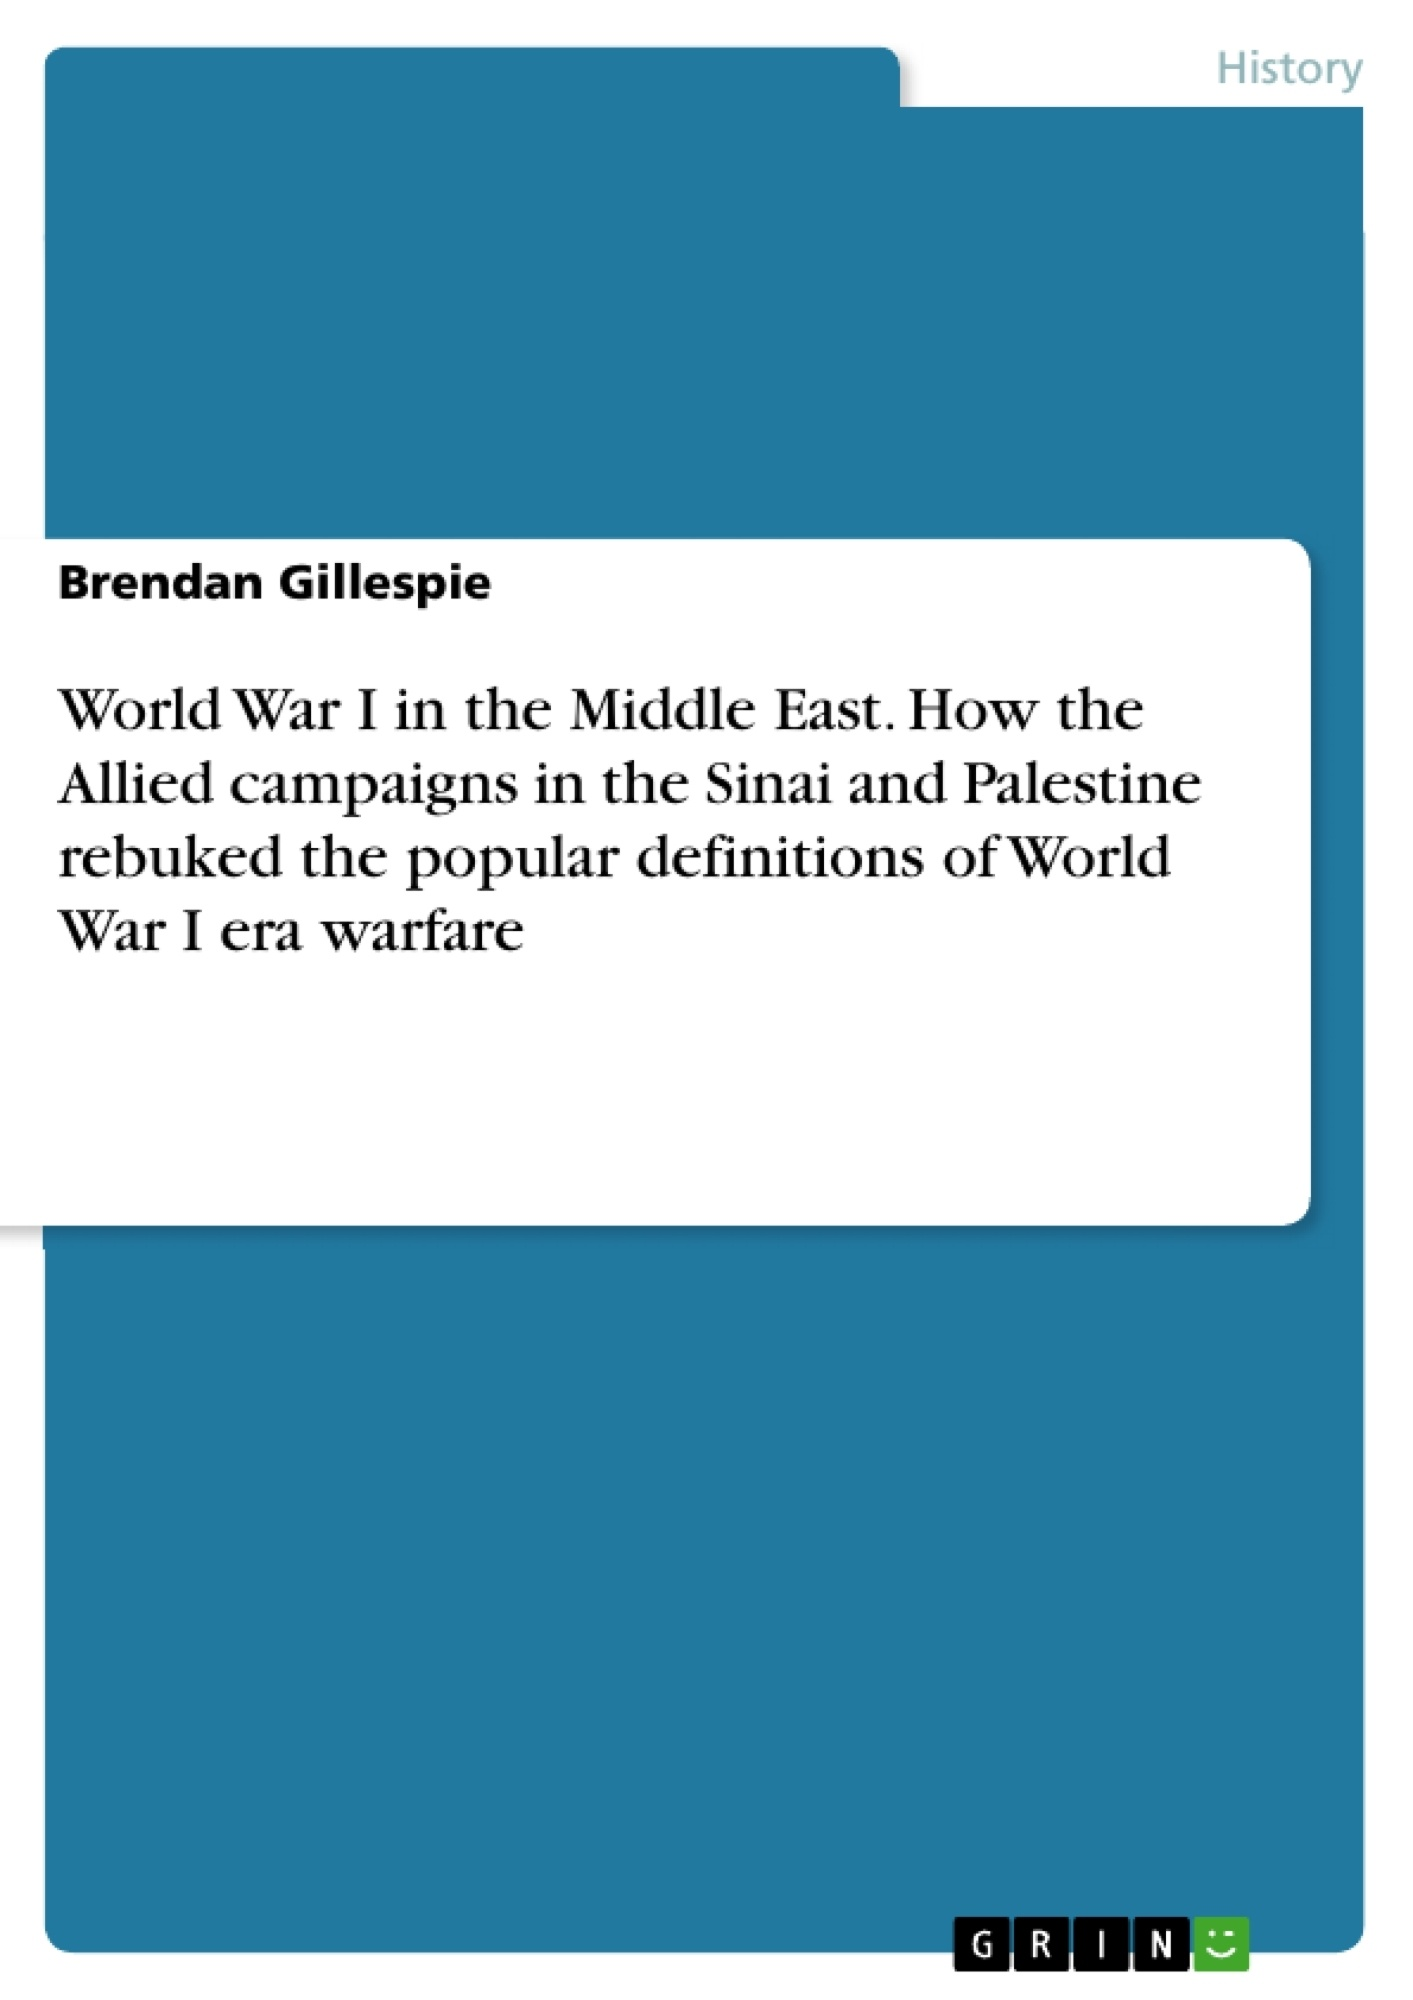 Title: World War I in the Middle East. How the Allied campaigns in the Sinai and Palestine rebuked the popular definitions of World War I era warfare